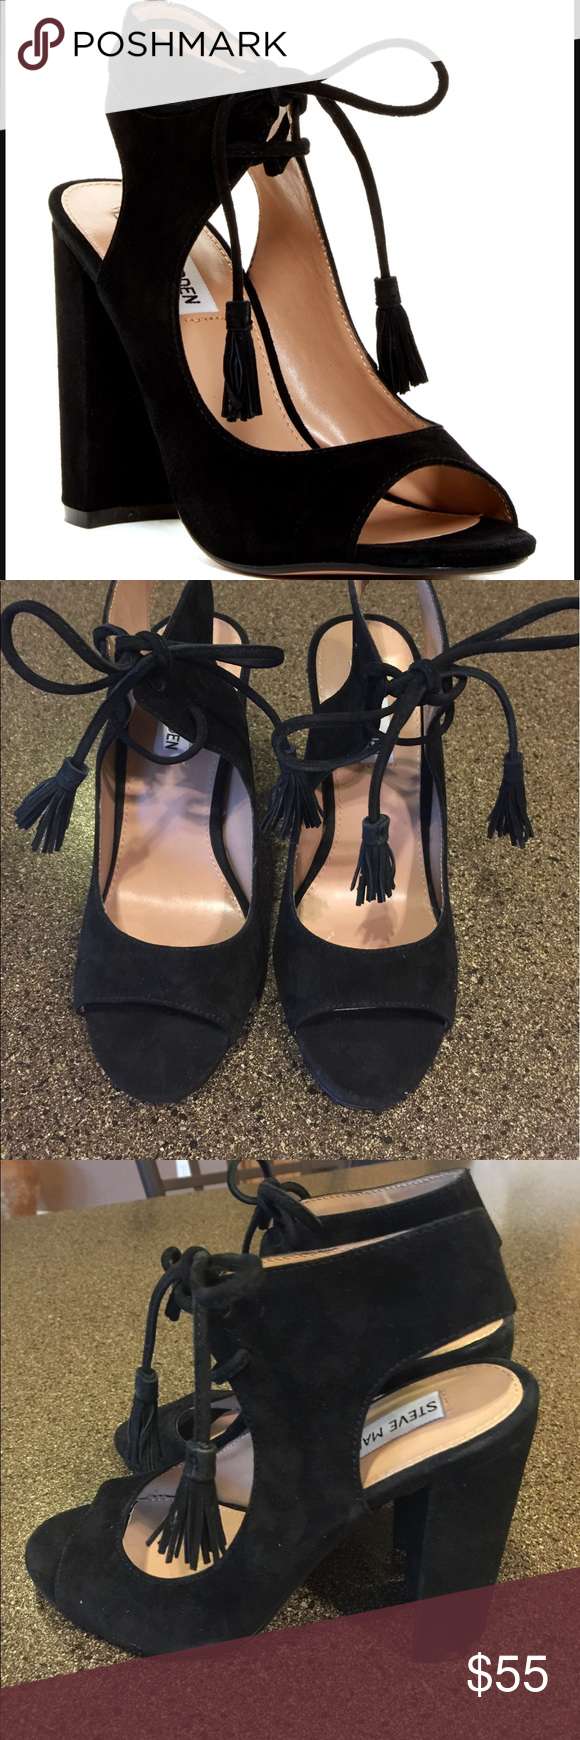 NEW Steve Madden Charlea Block Heel Sandals Sz 7 NEW Steve Madden Charlea Block Heel Sandals Size 7 Black Suede. Gorgeous shoes 😍 Steve Madden Shoes Sandals